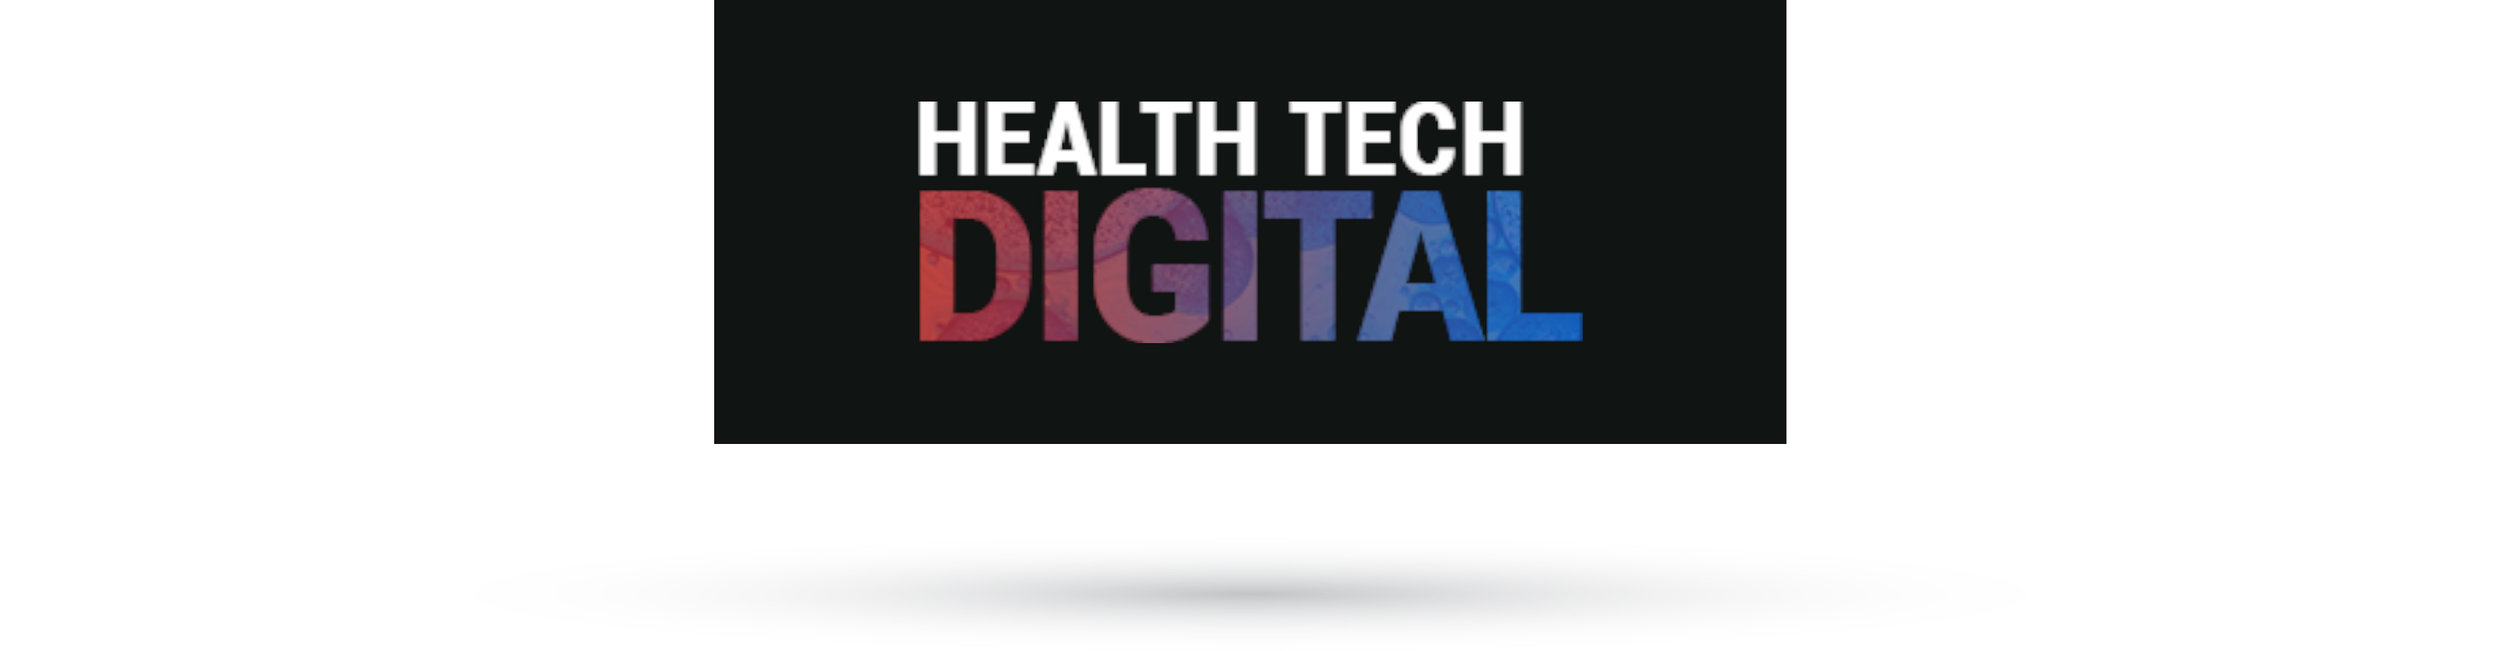 Published: January 28, 2019 by Health Tech Digital